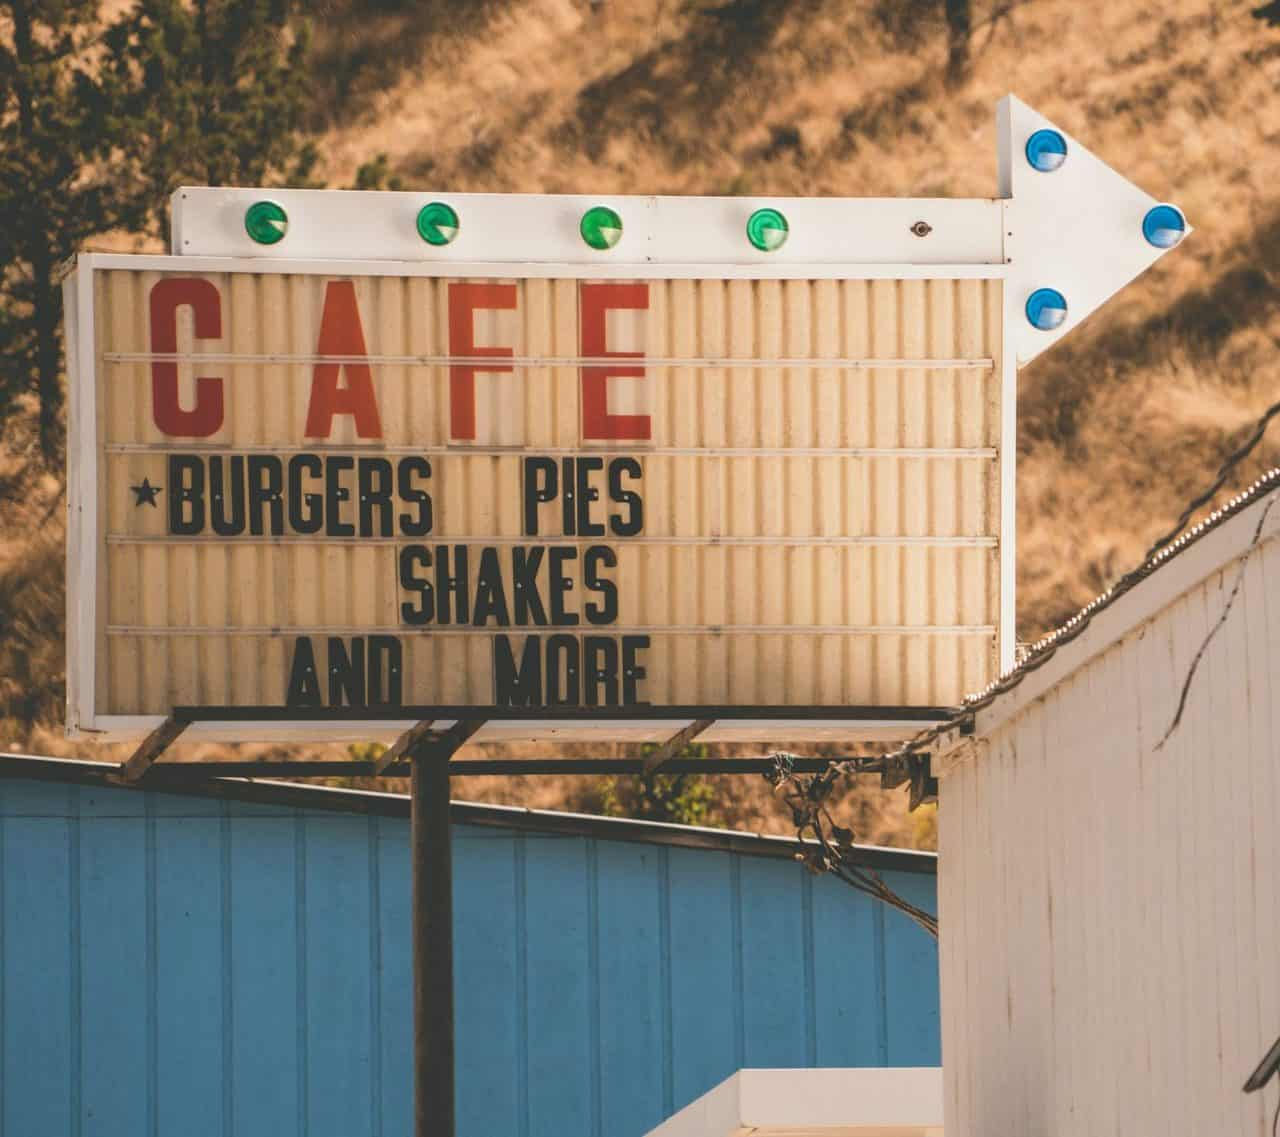 Old arrow sign with Burgers Pies Shakes and More written on it